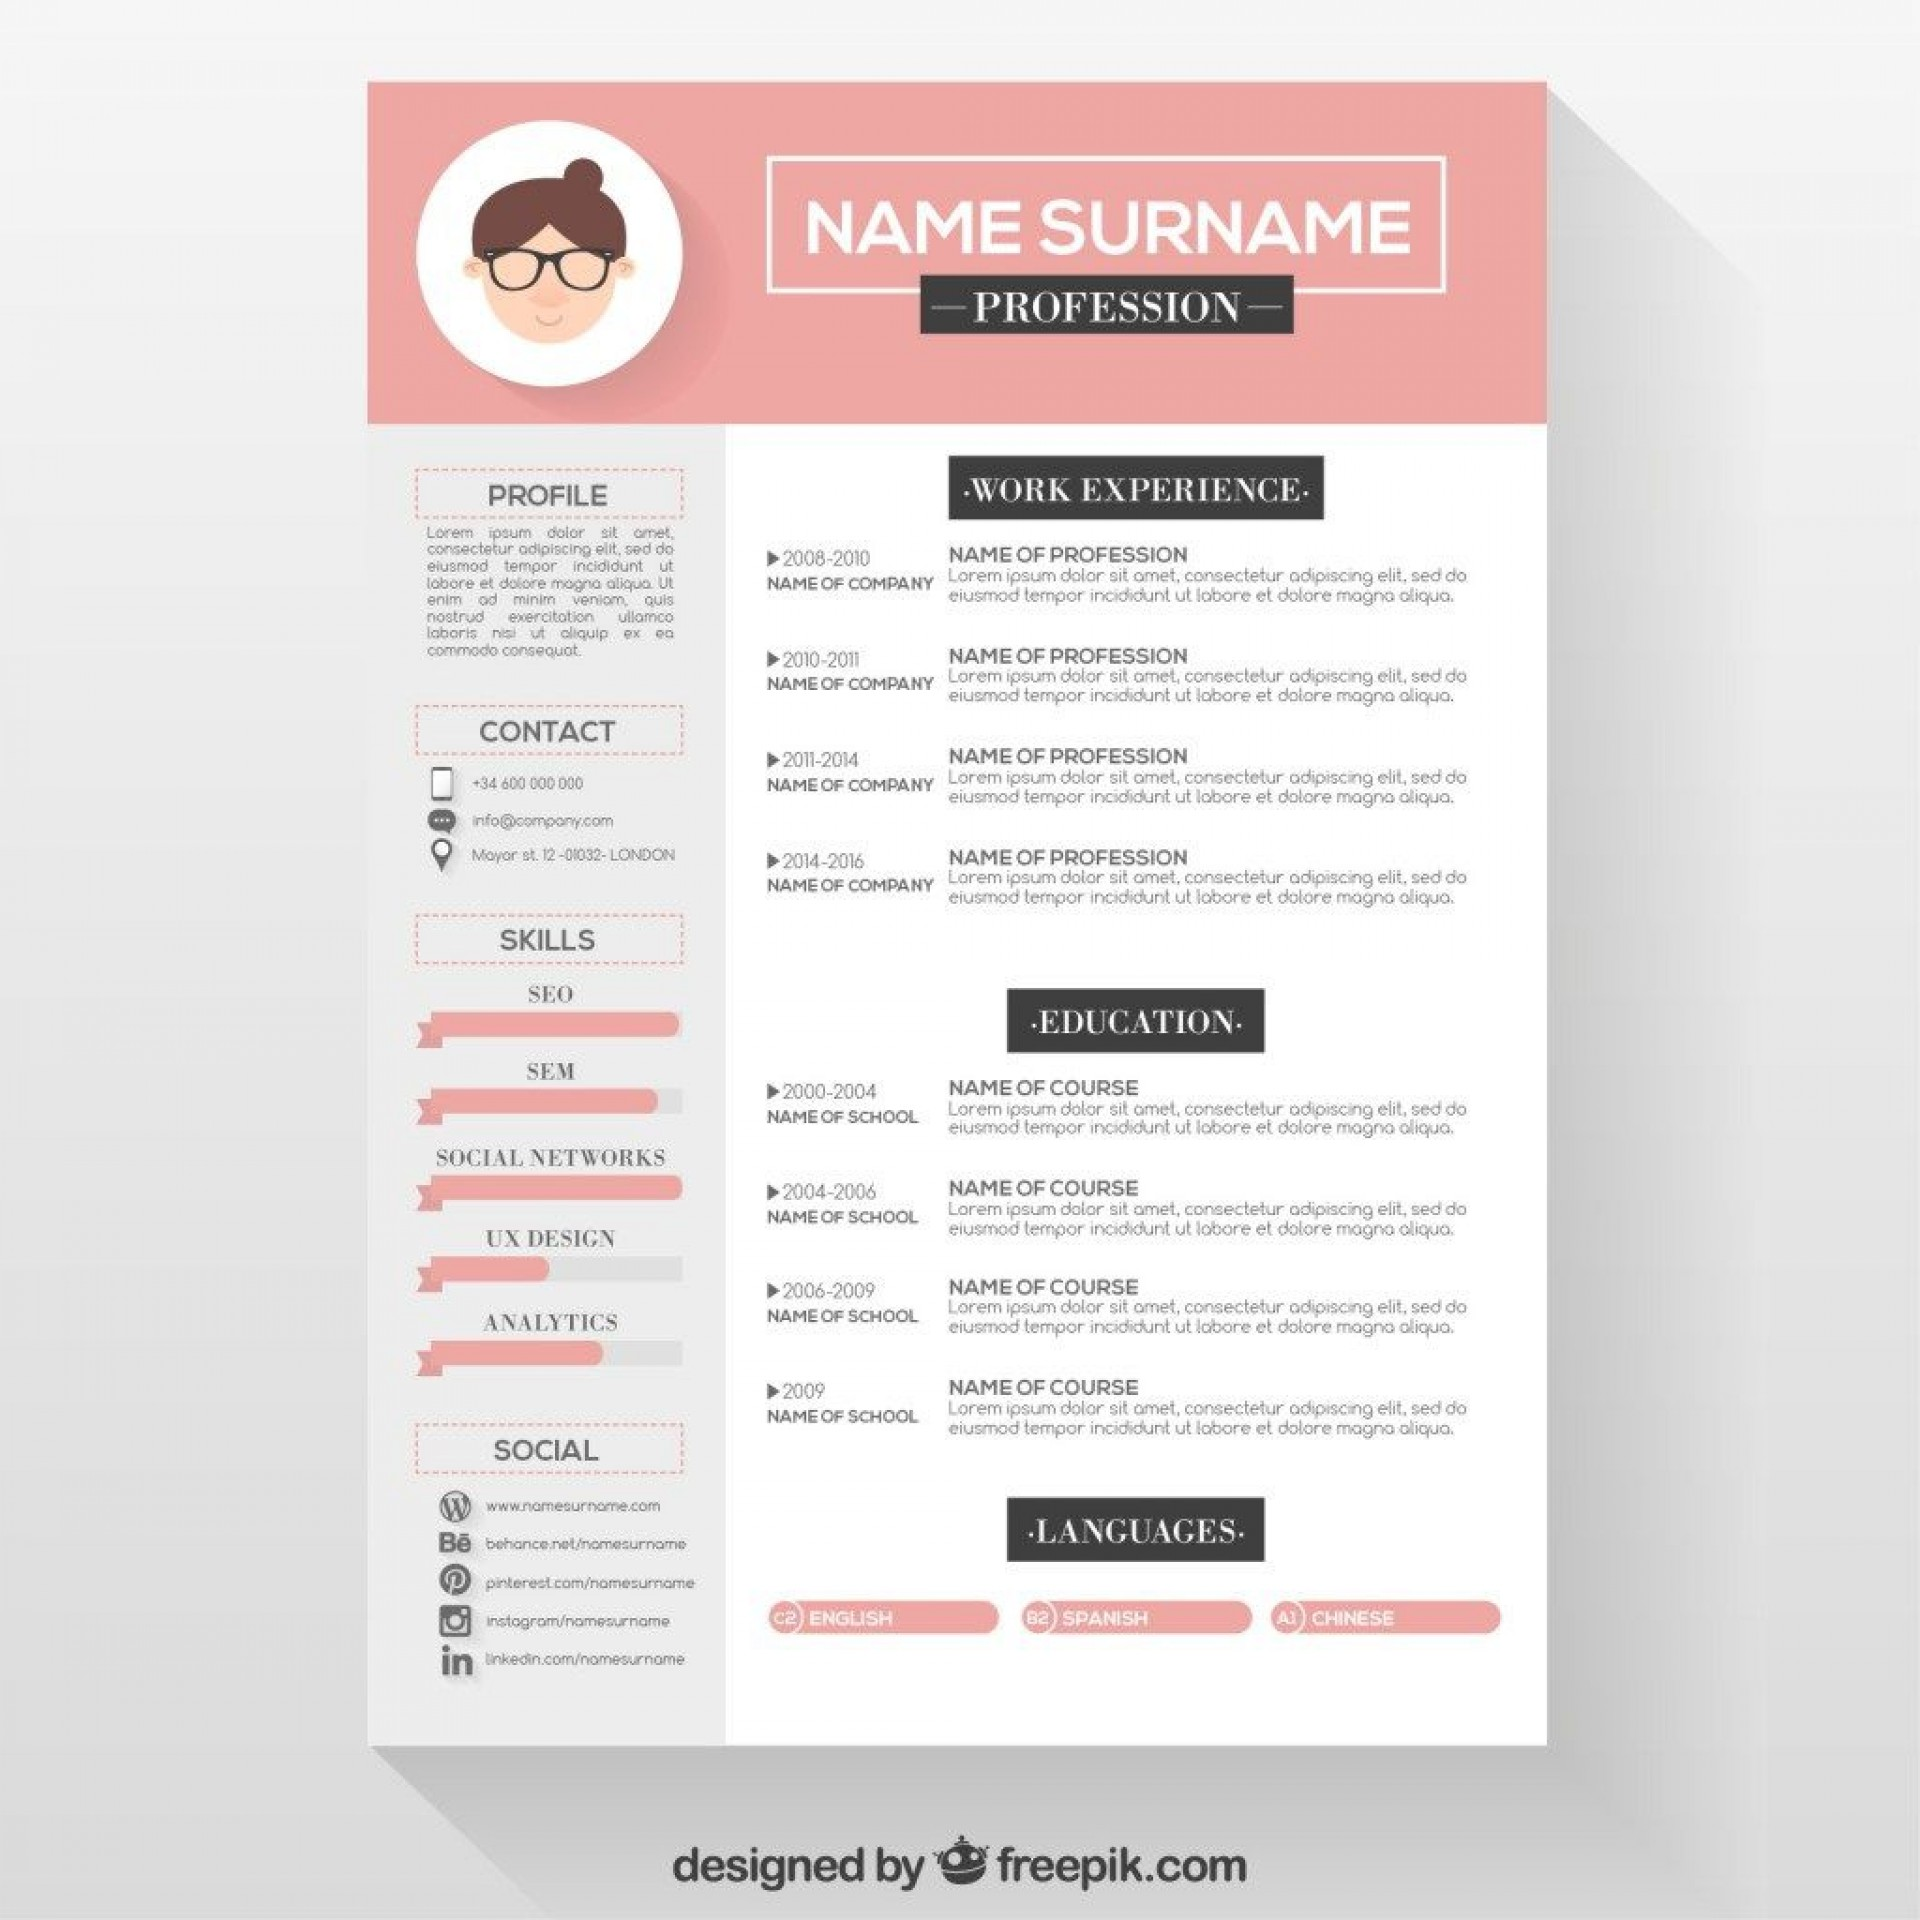 007 Frightening Download Free Resume Template Design  Word Professional 2019 20201920